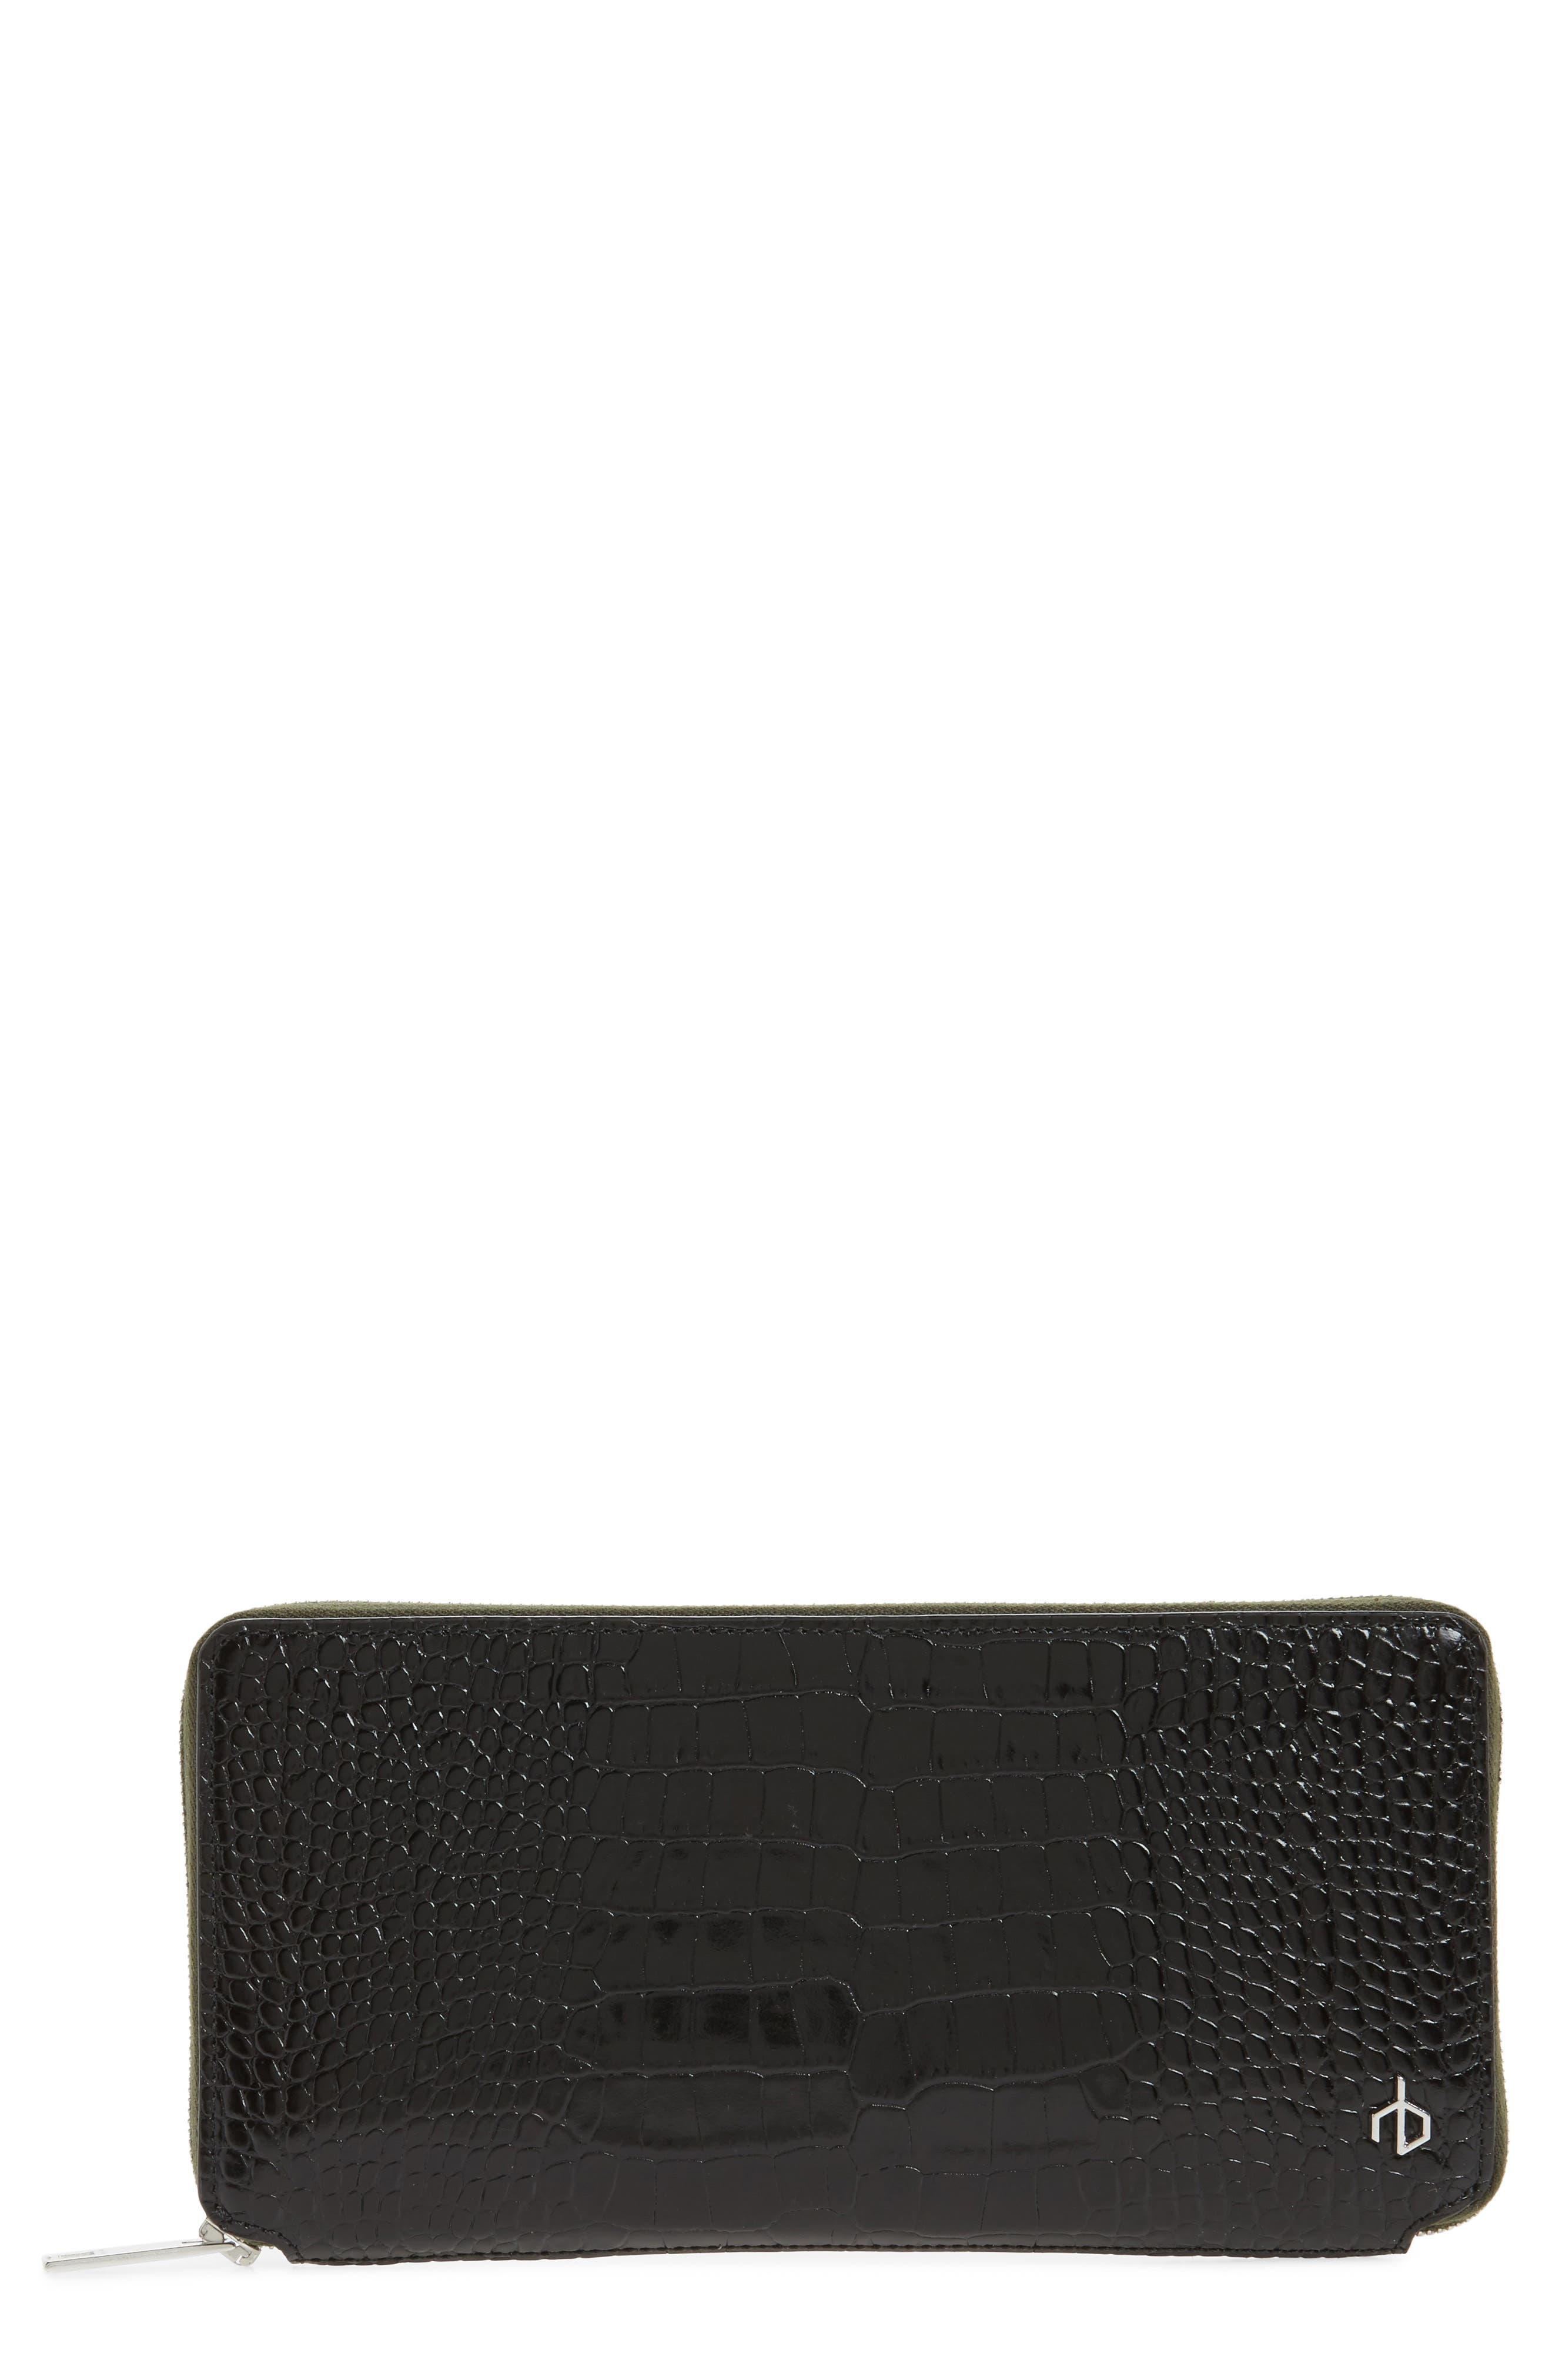 Croc Embossed Zip Around Leather Wallet,                             Main thumbnail 1, color,                             Black Croco